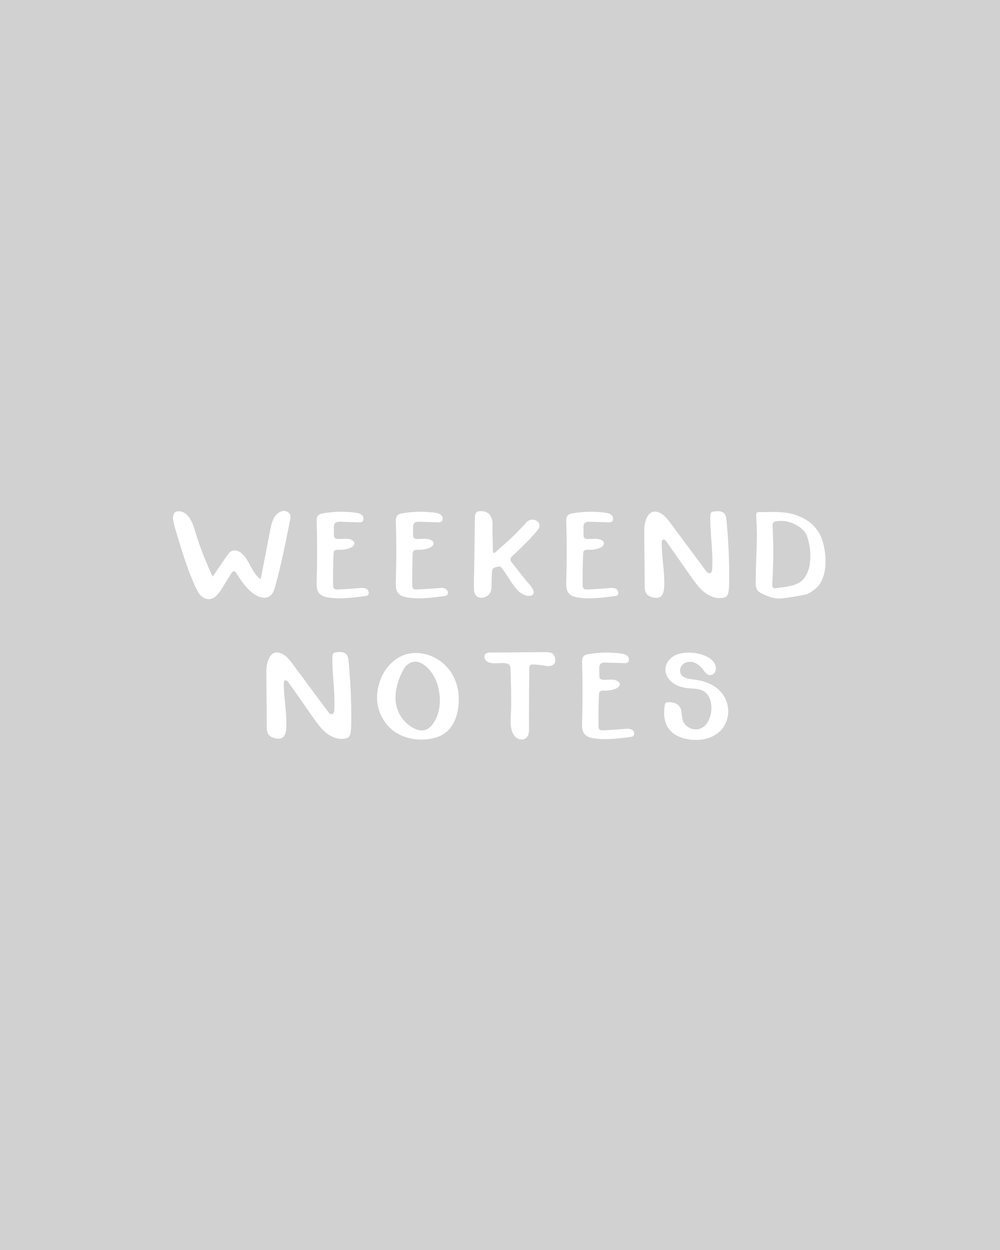 In The Shop: Handmade Fonts | Weekend Notes by Britt Fabello | Sea of Atlas